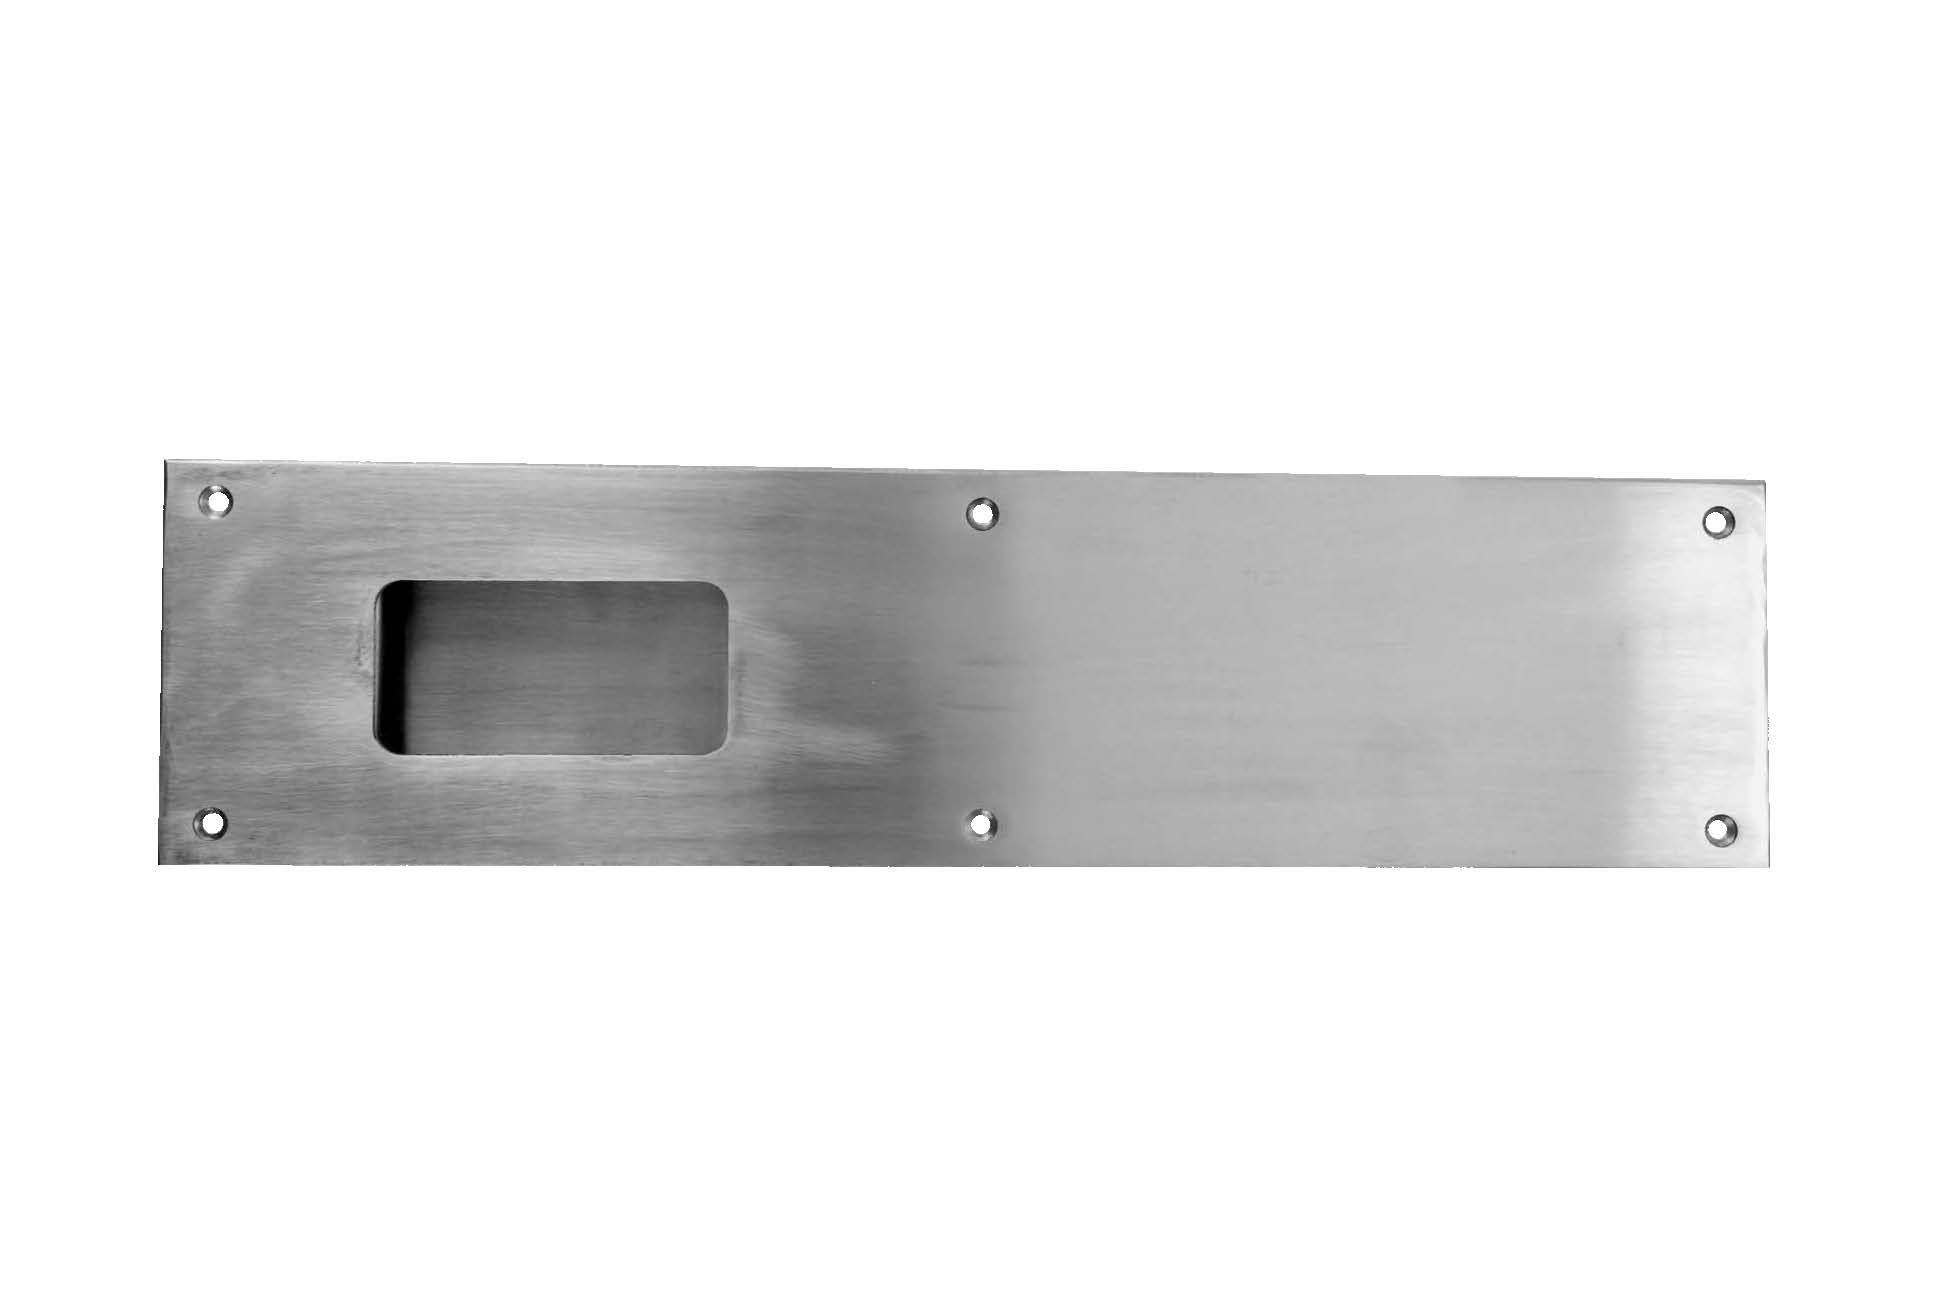 Don-Jo 1860 16 Gauge Stainless Steel Flush Cup Pull, Satin Stainless Steel Finish, 4'' Width x 16'' Height x 3/4'' Depth